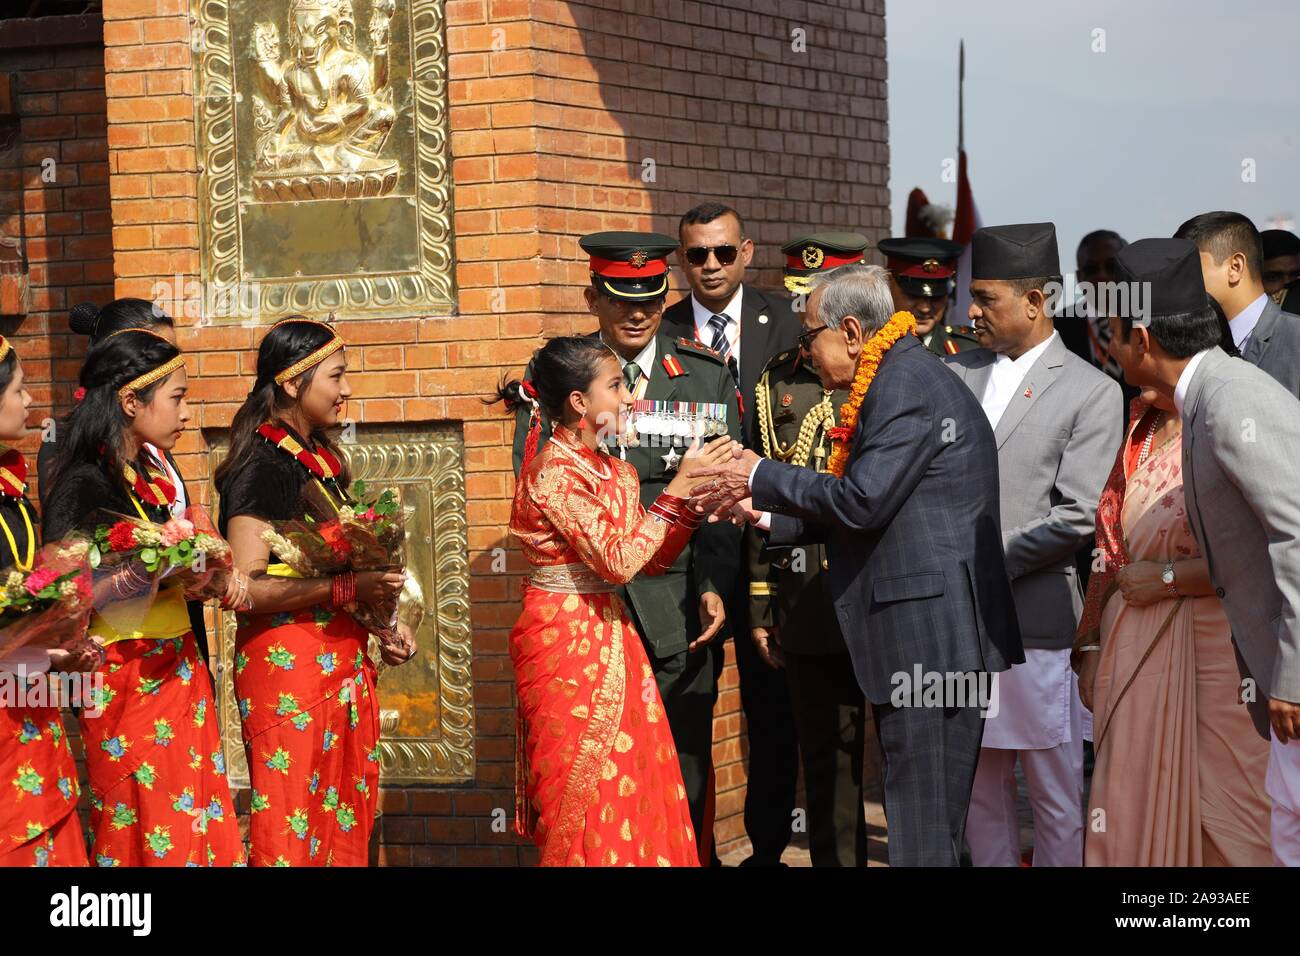 Kathmandu, Nepal. 12th Nov, 2019. Nepalese children giving garland to President of Bangladesh, Abdul Hamid during a welcome ceremony at Tribhuvan International Airport, Kathmandu, Nepal on Tuesday, November 12, 2019. President of Bangladesh, Abdul Hamid is on a four-day official goodwill visit to Nepal at the invitation of President of Nepal Bidhya Devi Bhandari. (Photo by Subash Shrestha/Pacific Press) Credit: Pacific Press Agency/Alamy Live News Stock Photo